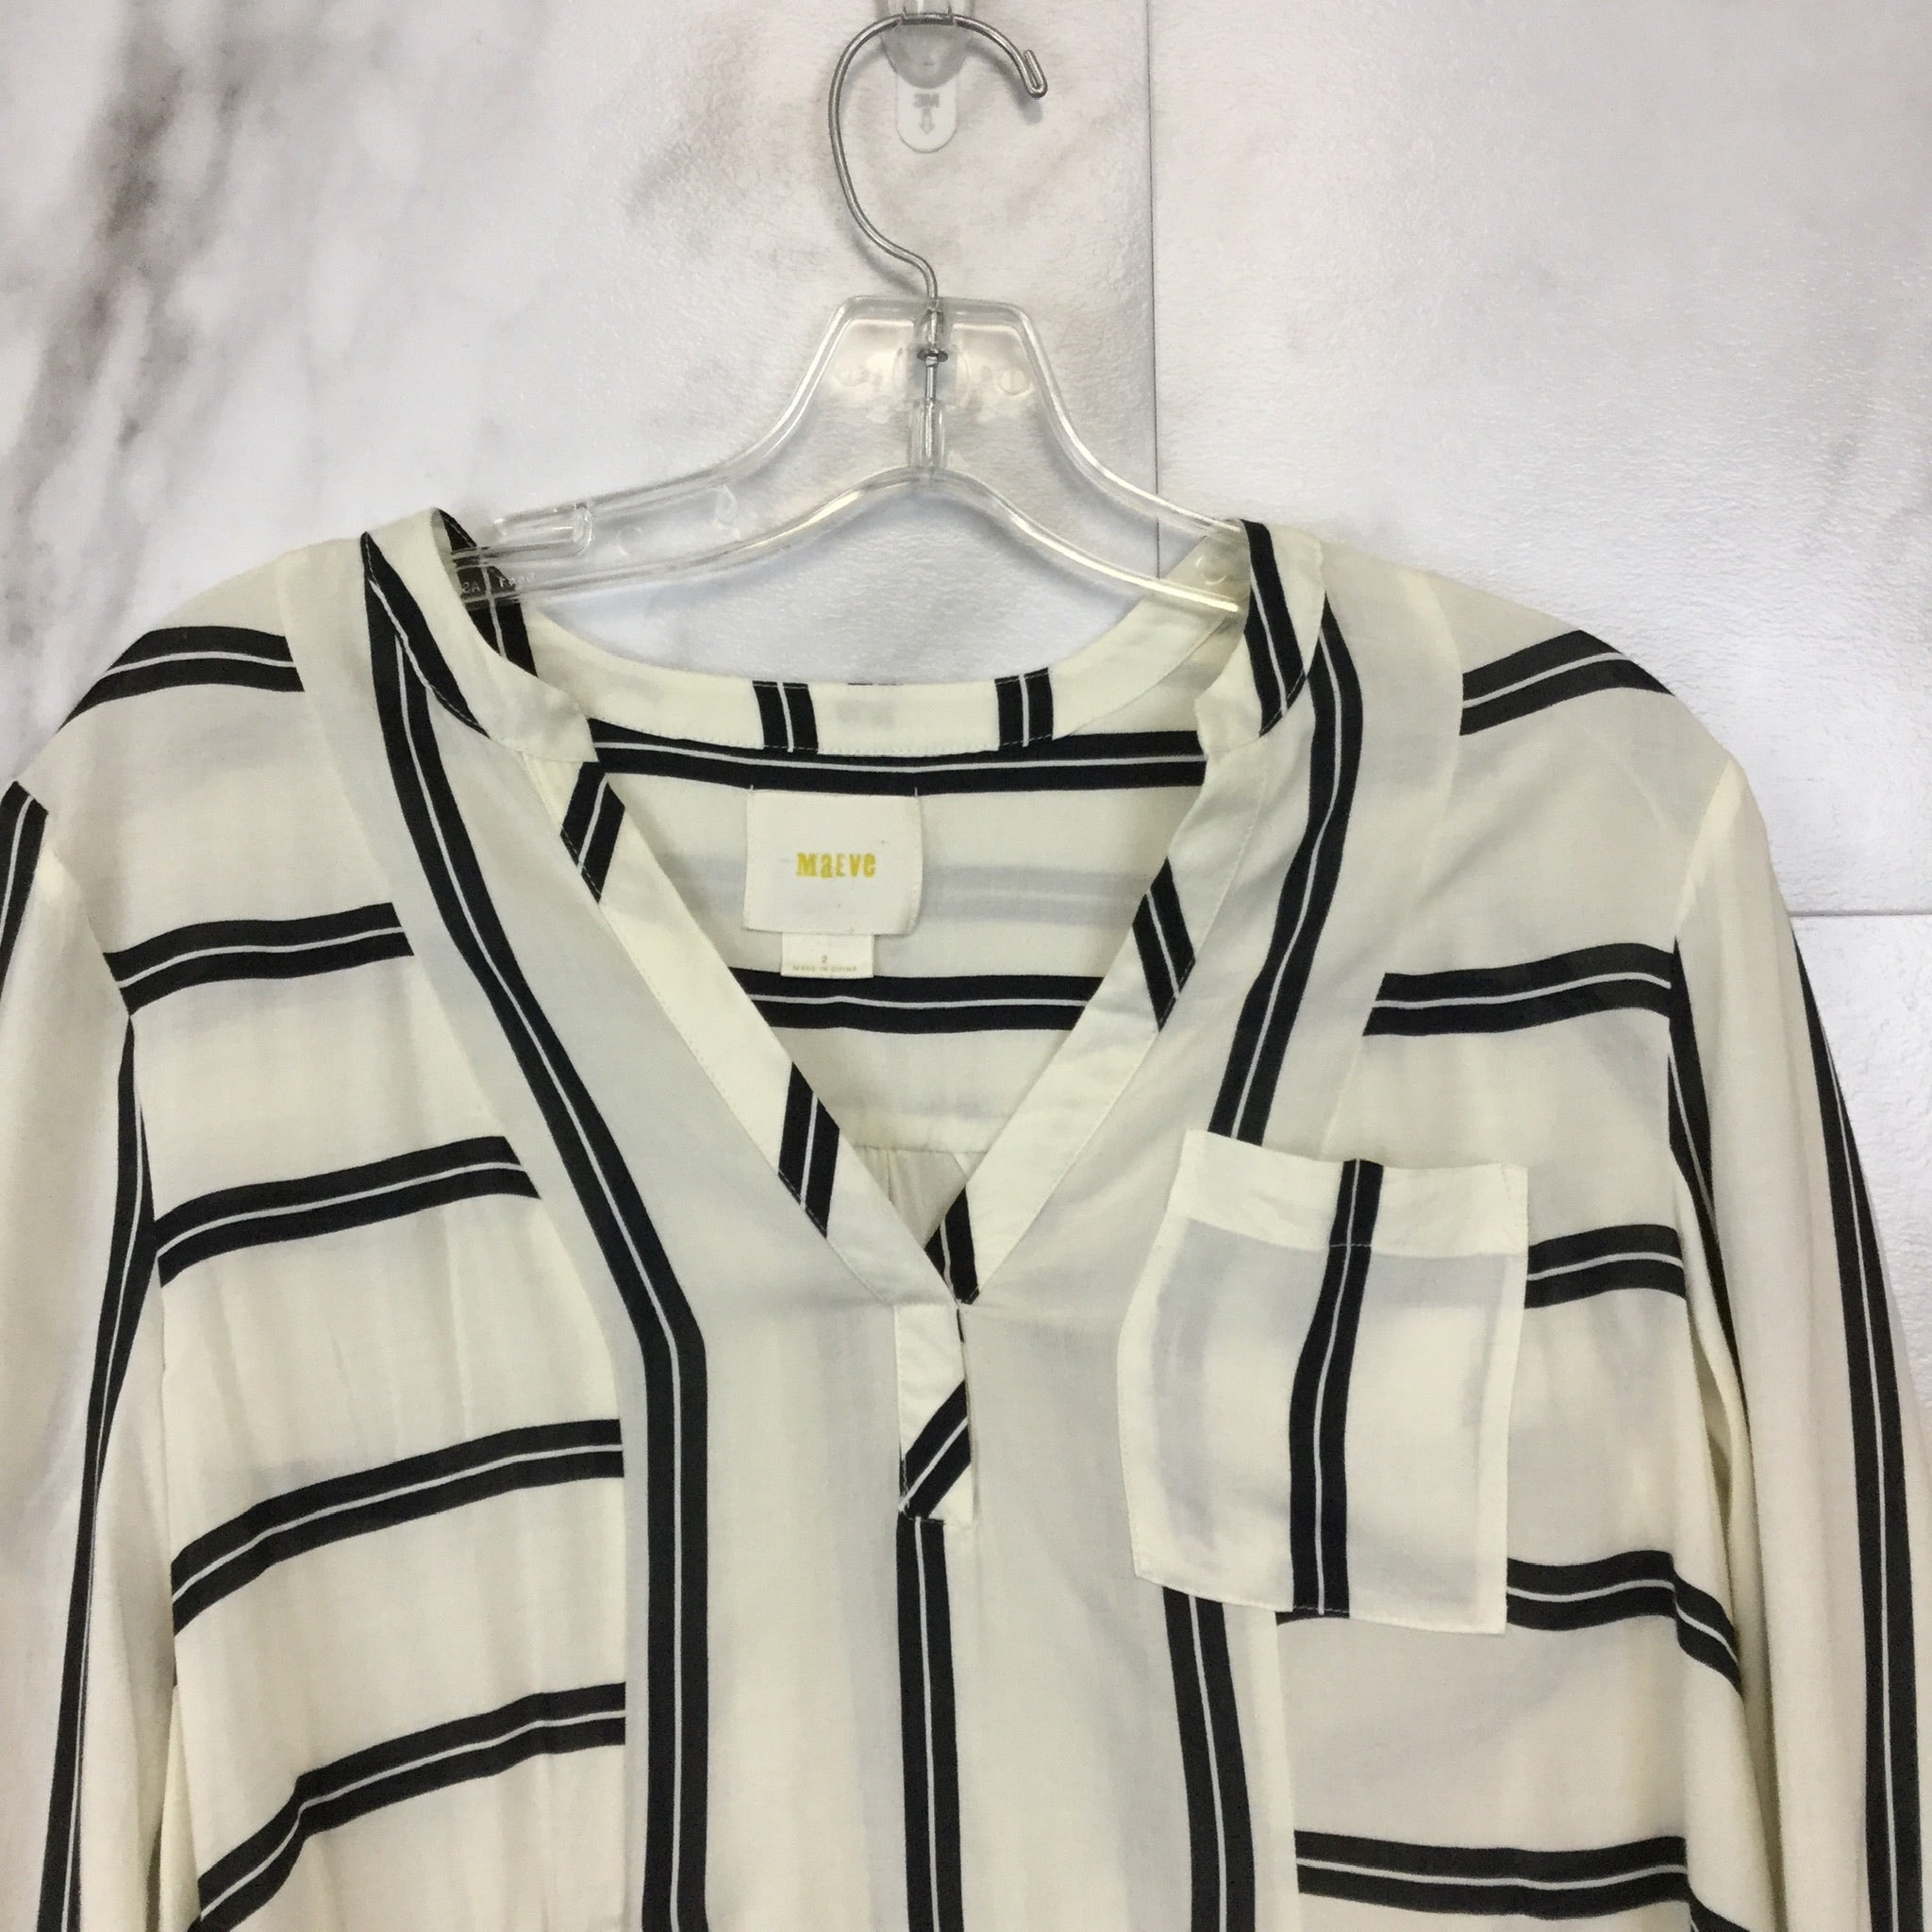 Anthropologie Maeve Laiken Henley Top - Size 2